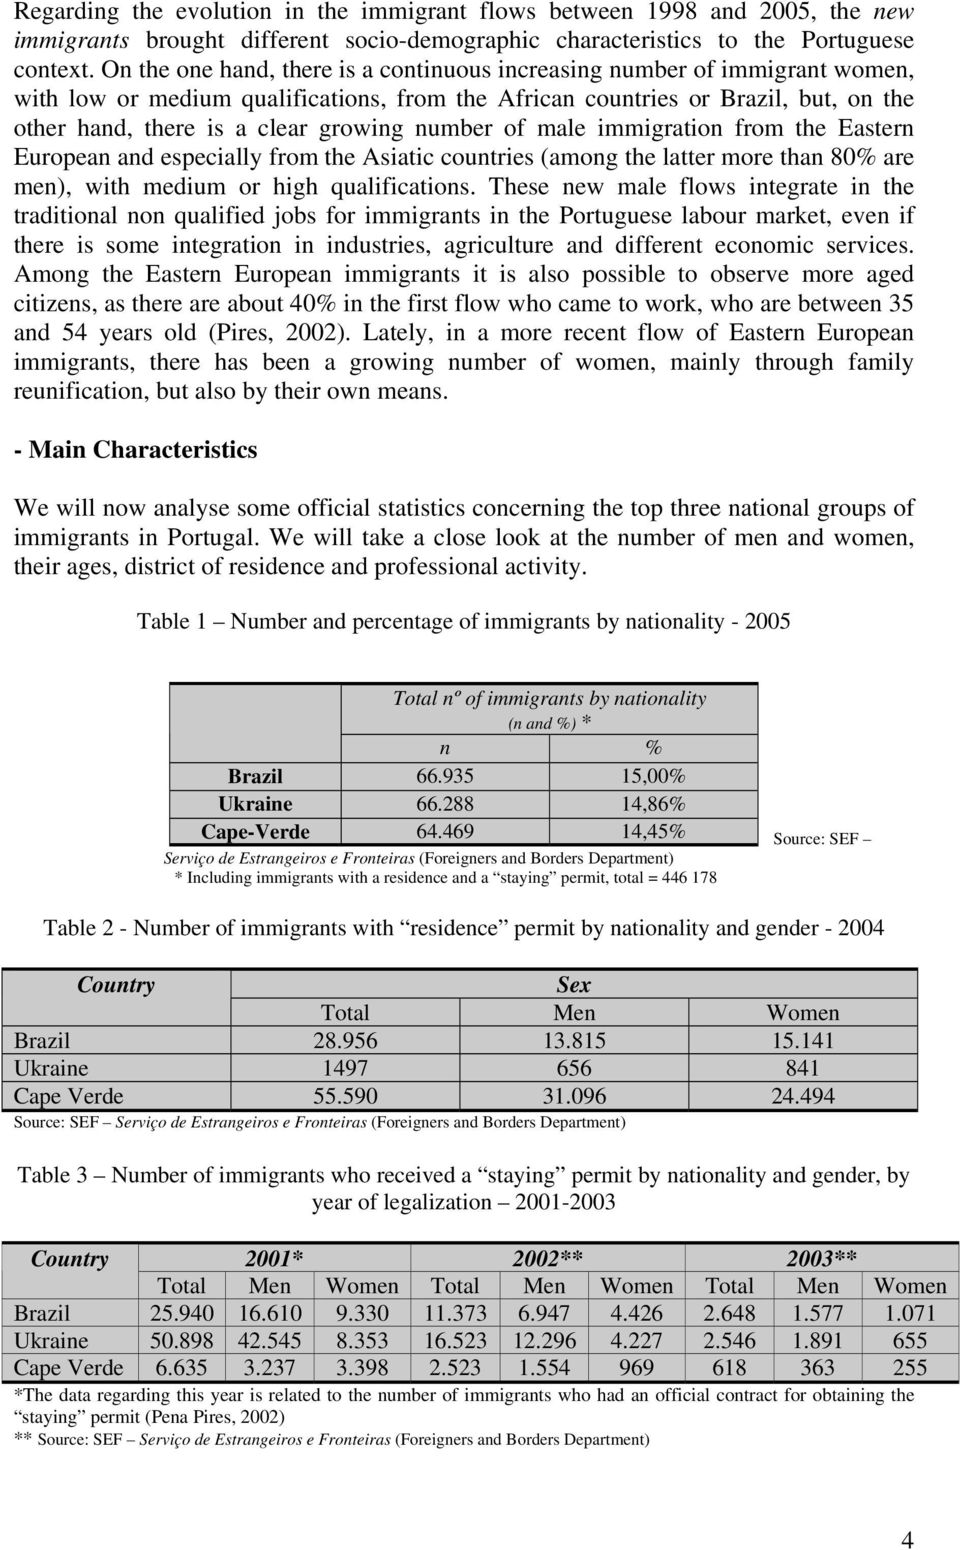 number of male immigration from the Eastern European and especially from the Asiatic countries (among the latter more than 80% are men), with medium or high qualifications.